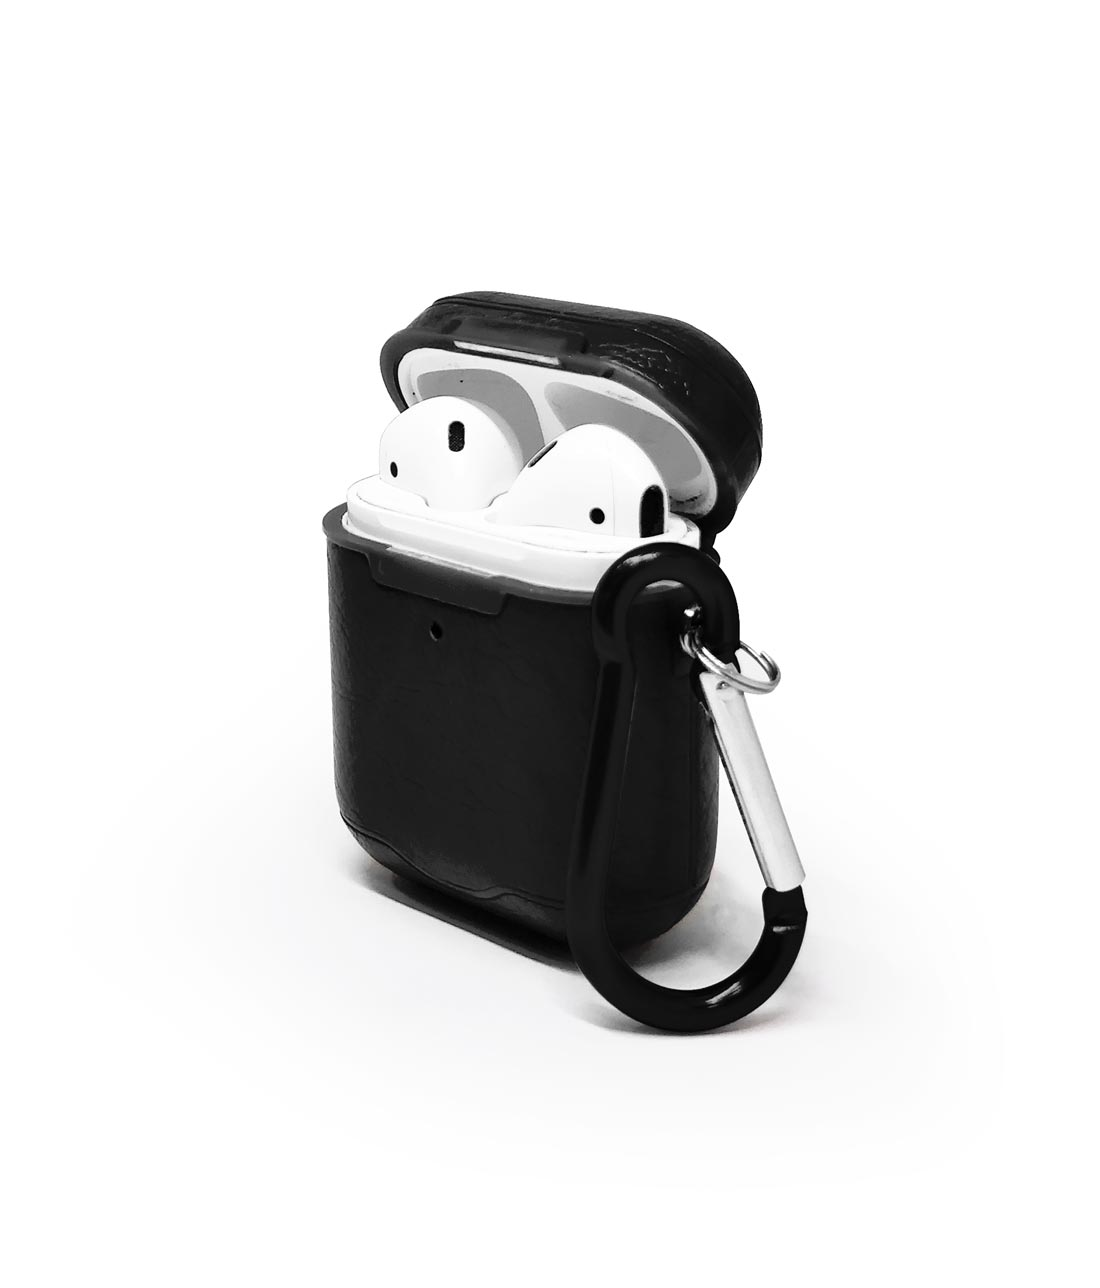 Leather Case Black - AirPods Case